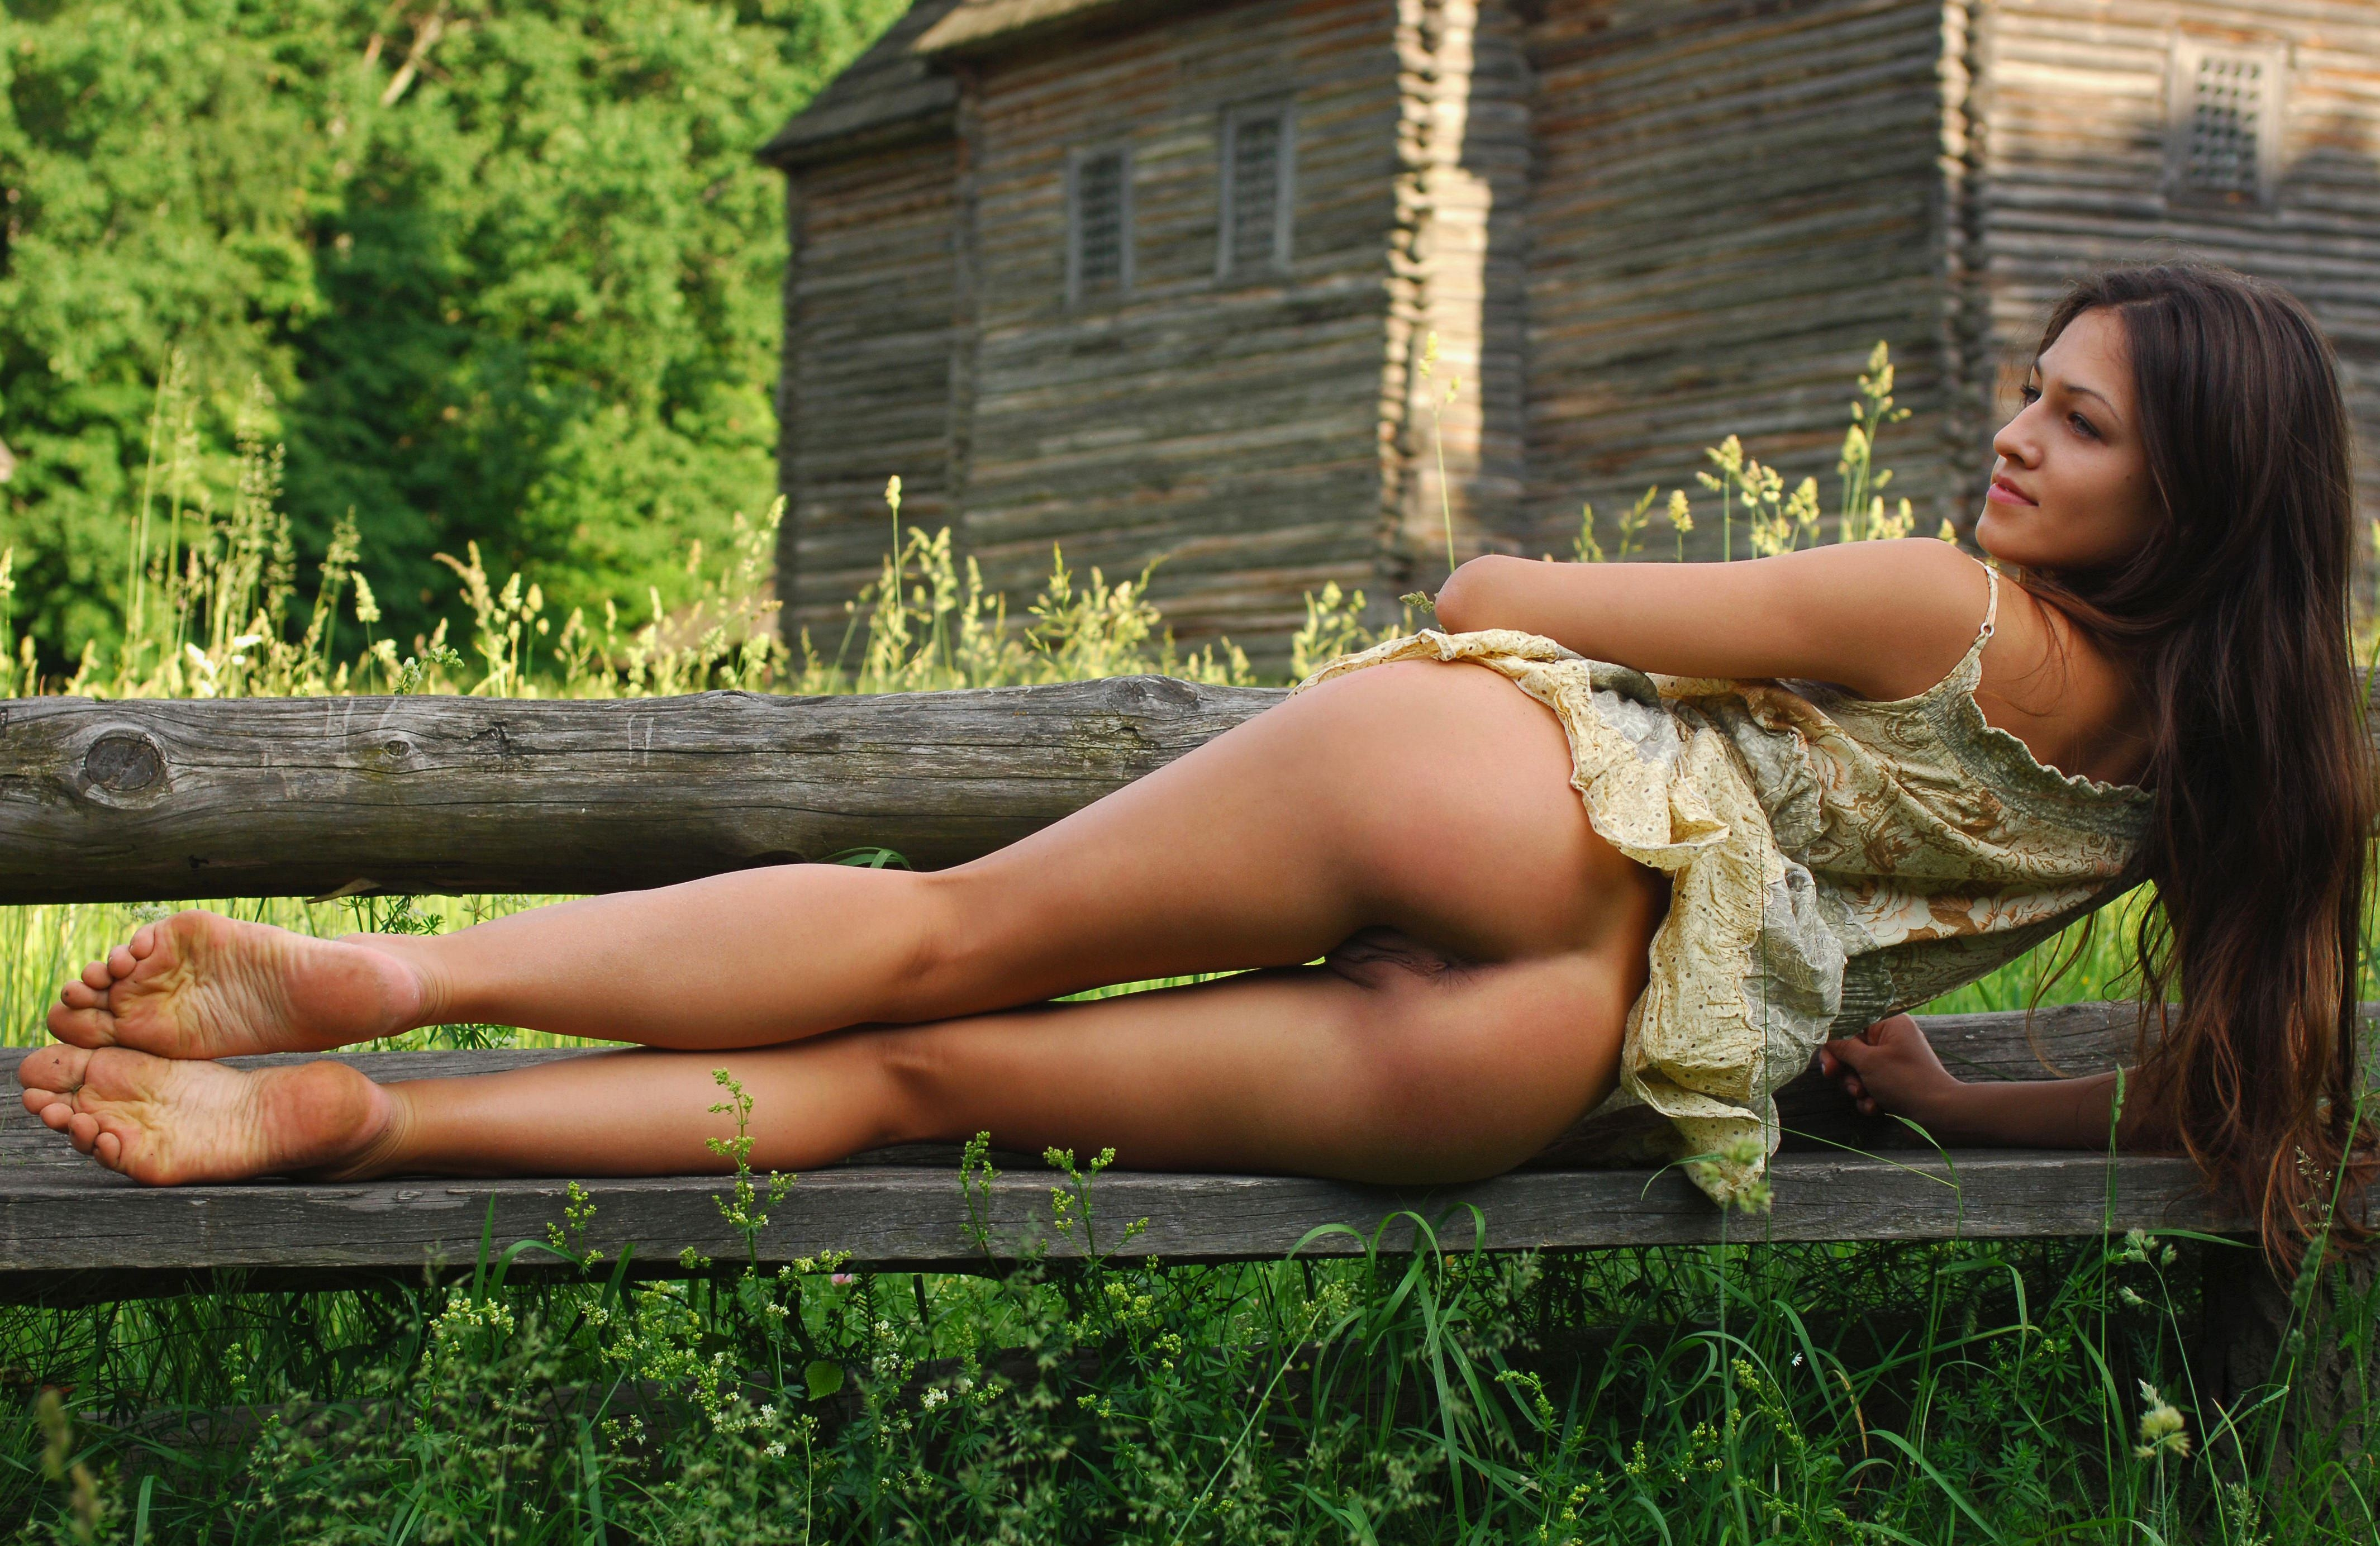 Beautiful implied nude woman in grass with flowers stock photo